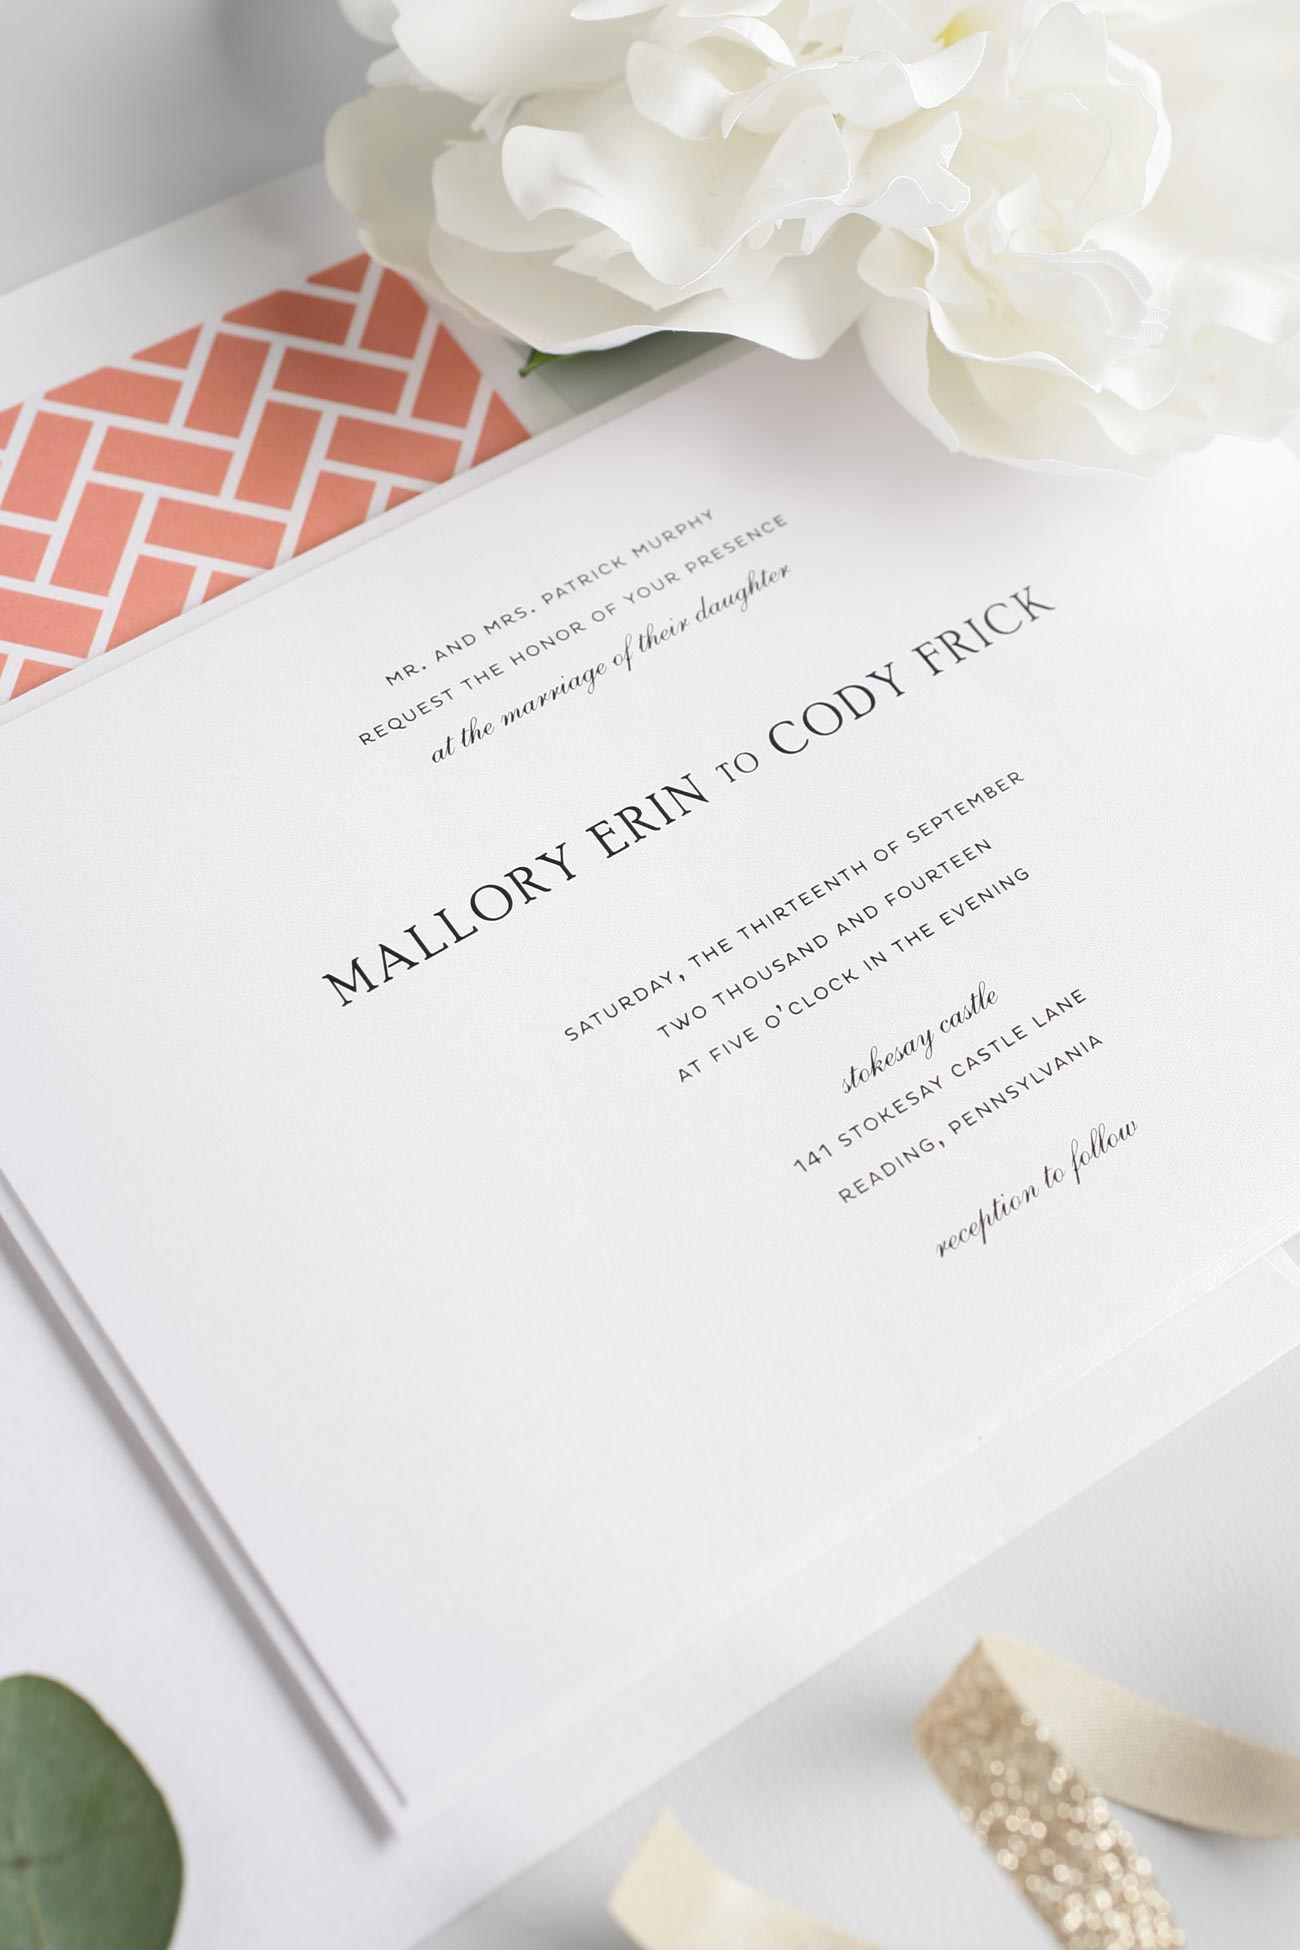 coral wedding invitations simple and elegant wedding invitations in coral - Simple Elegant Wedding Invitations